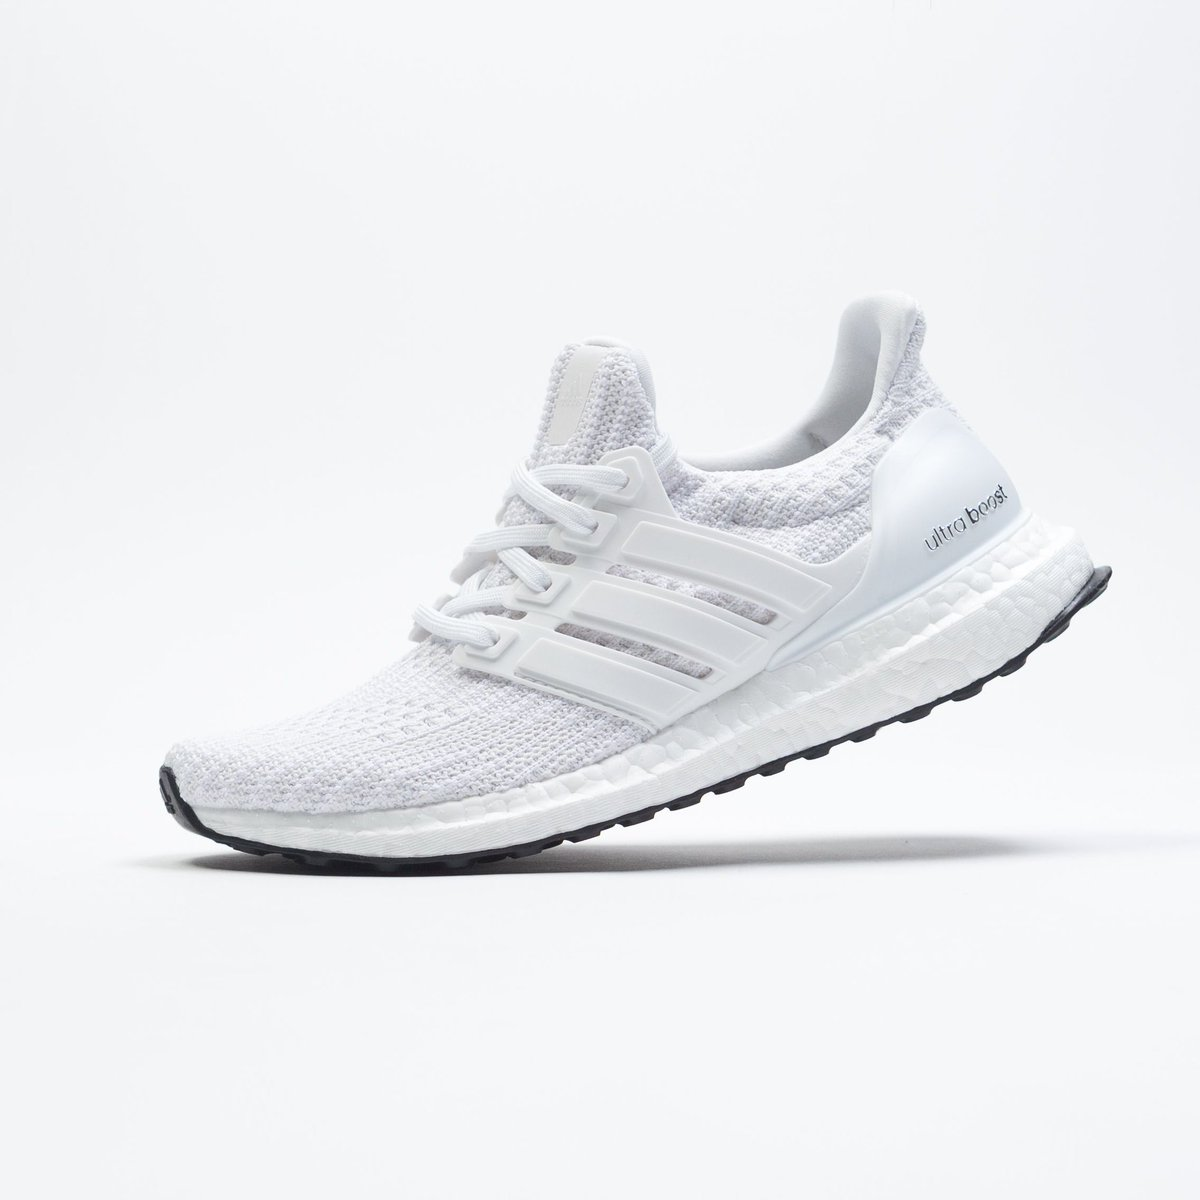 Get the adidas Ultra Boost 4.0 for  240 + Free Shipping! Triple White   http   bit.ly 2javZxR Core Black  http   bit.ly 2no3NMG Mocha   http   bit.ly 2j6vCEE ... 718d8911f